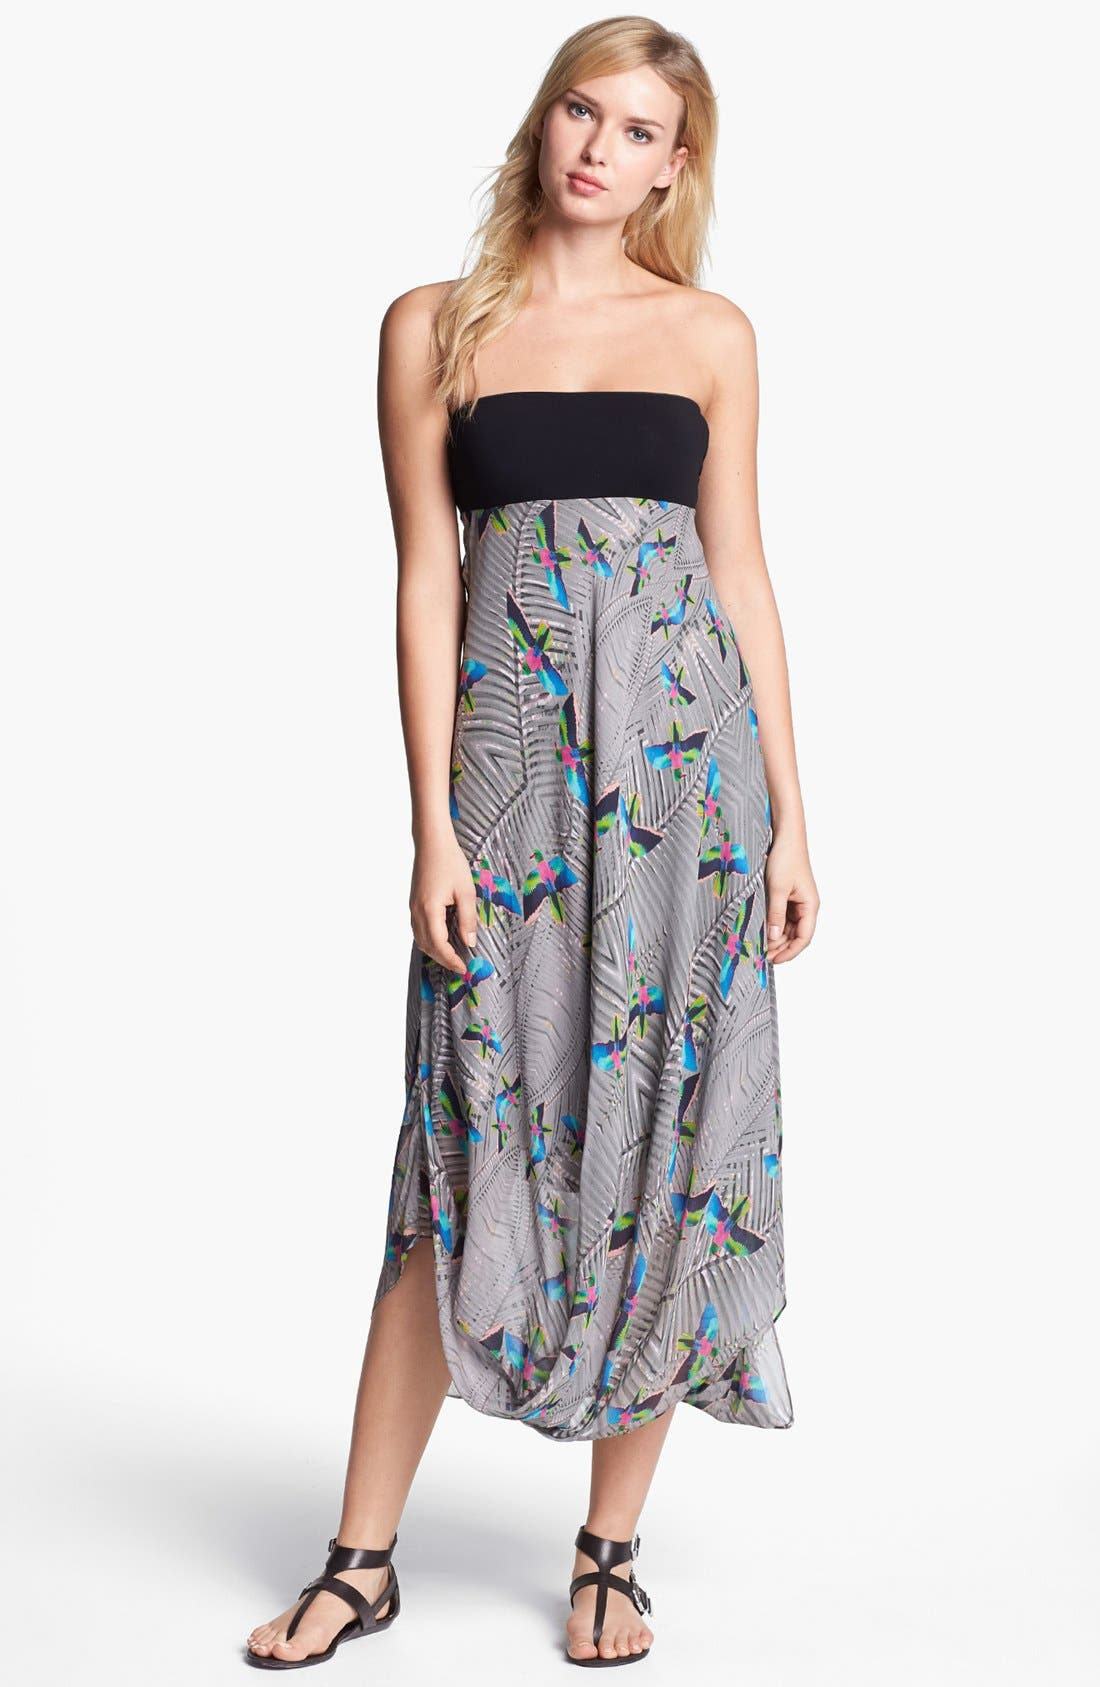 Alternate Image 1 Selected - Nicole Miller 'Jungle Bird' Print Strapless Midi Dress